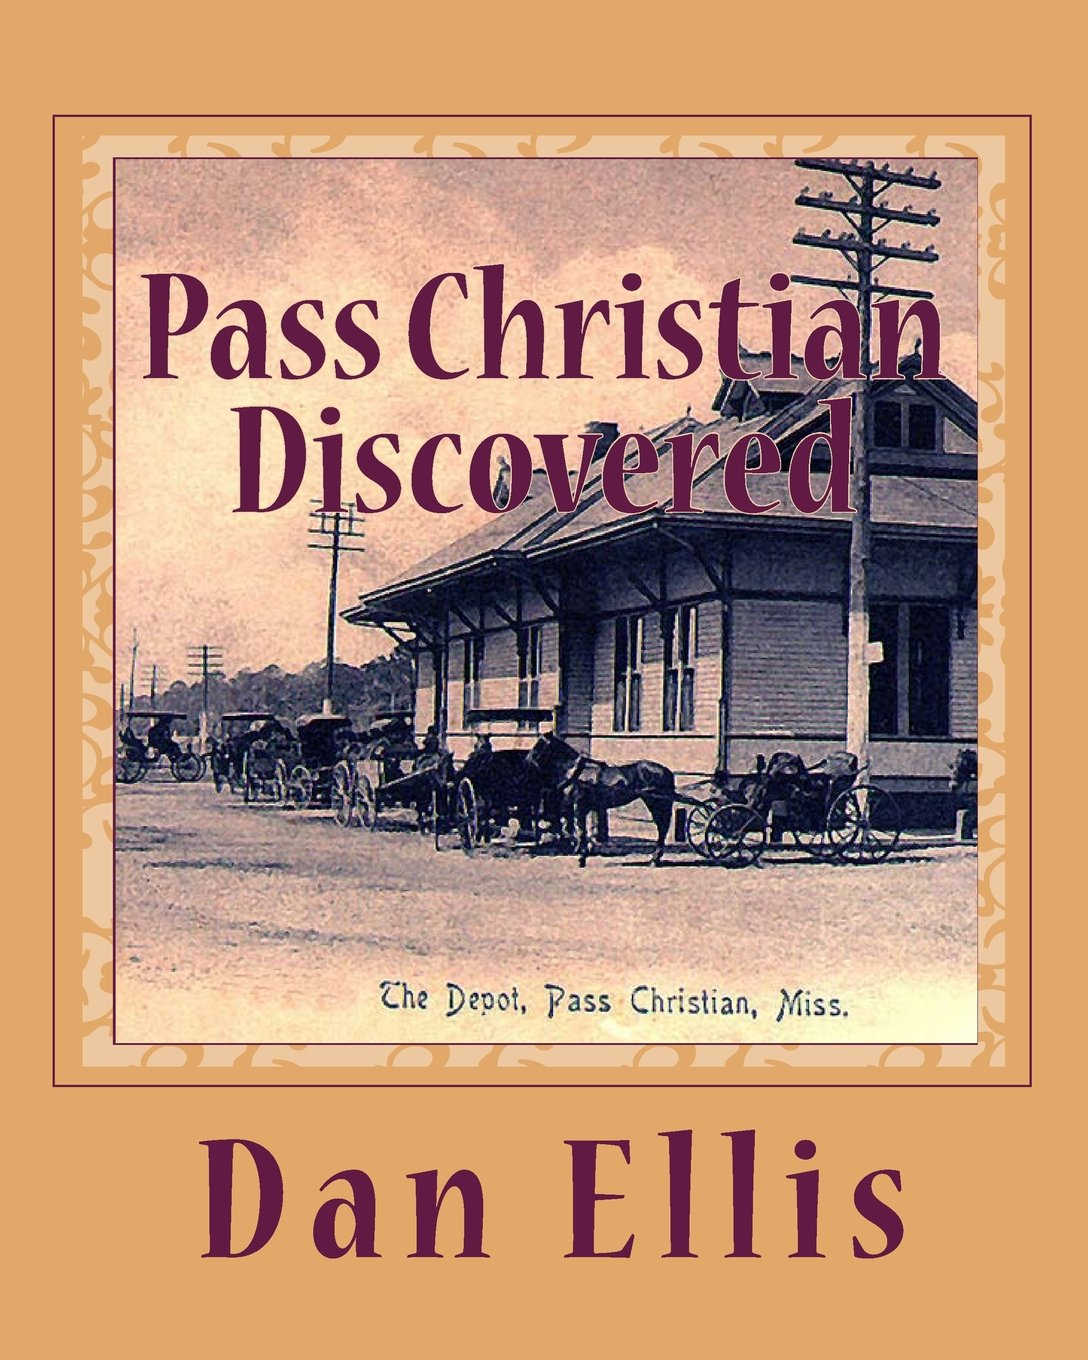 Dan Ellis, Pass Christian Discovered-click the link for more information about this book